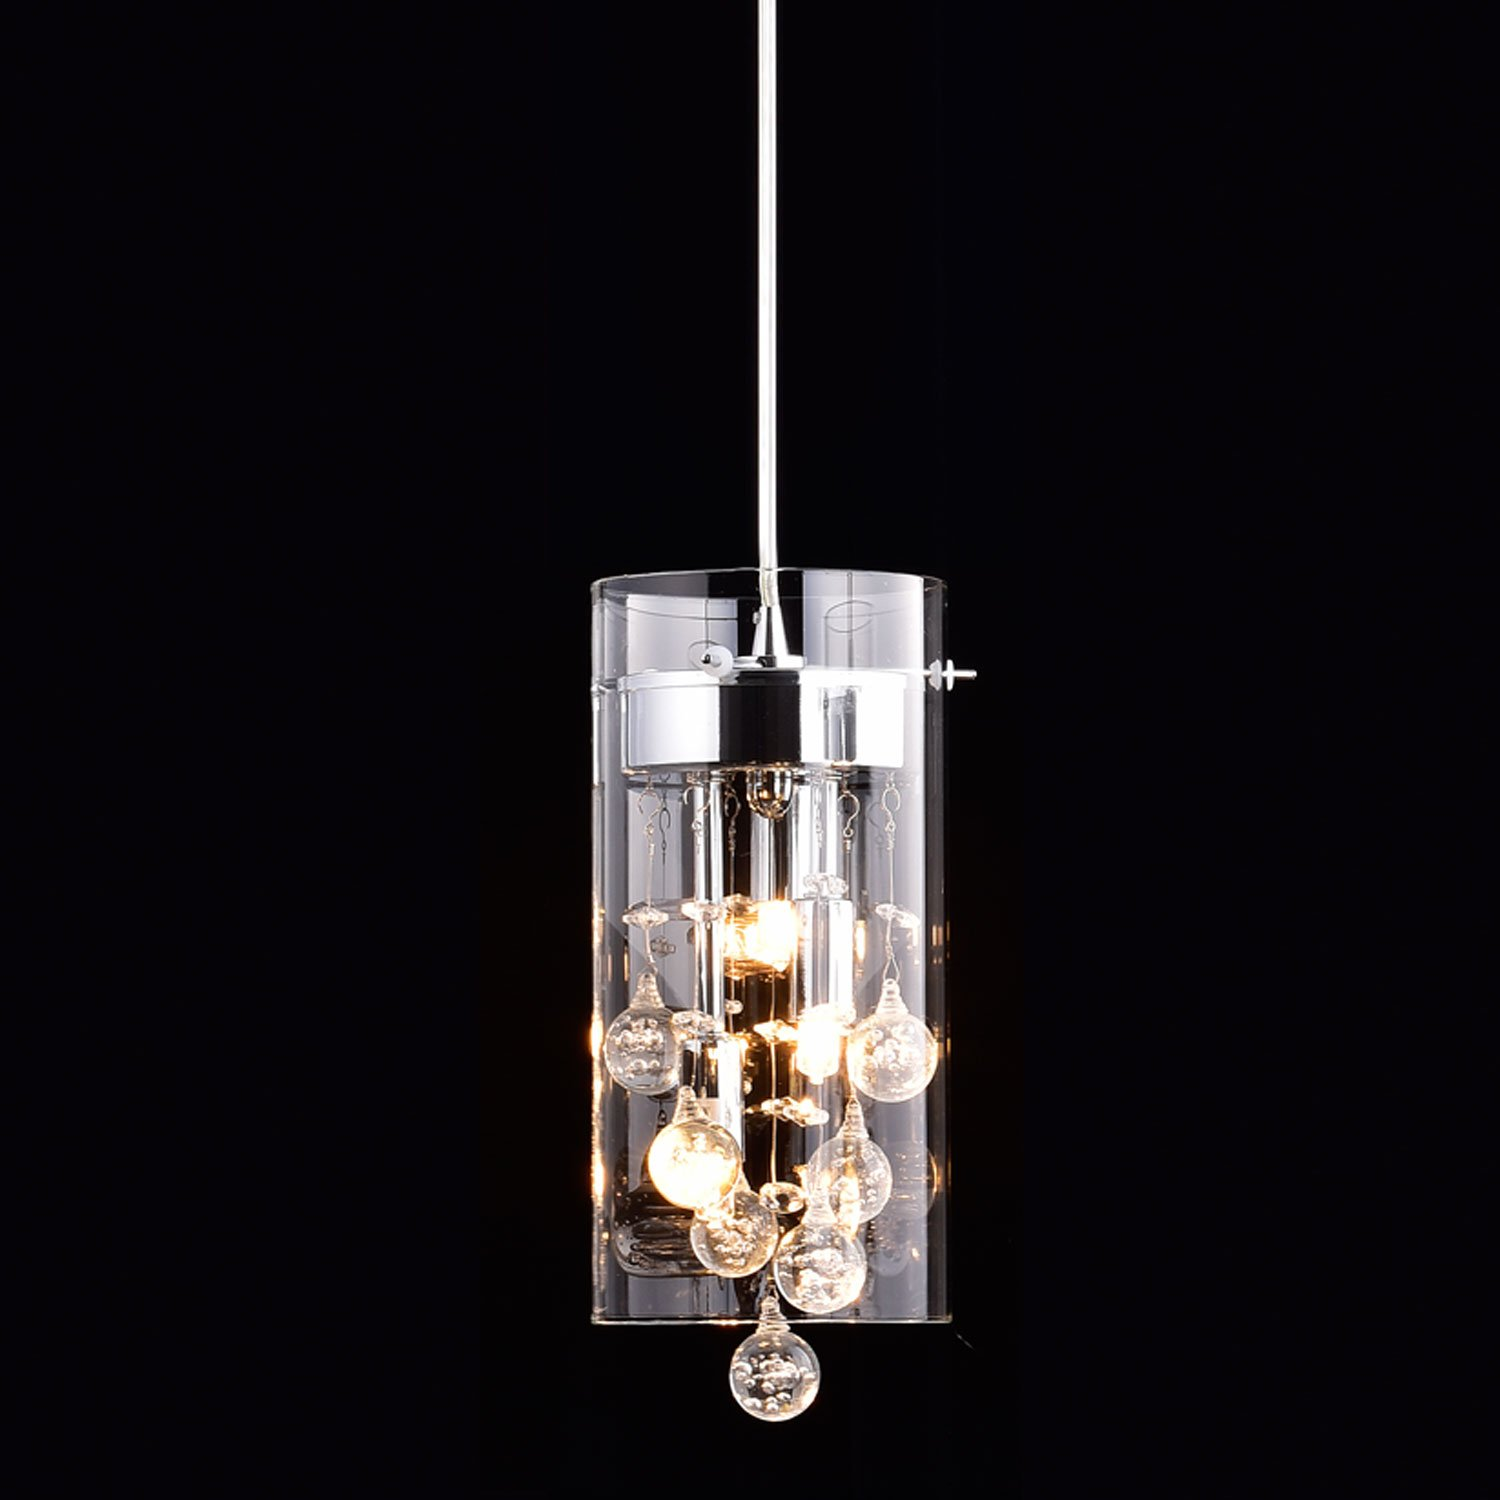 Claxy ecopower lighting glass crystal pendant lighting modern chandelier ebay - Modern pendant lighting for kitchen ...